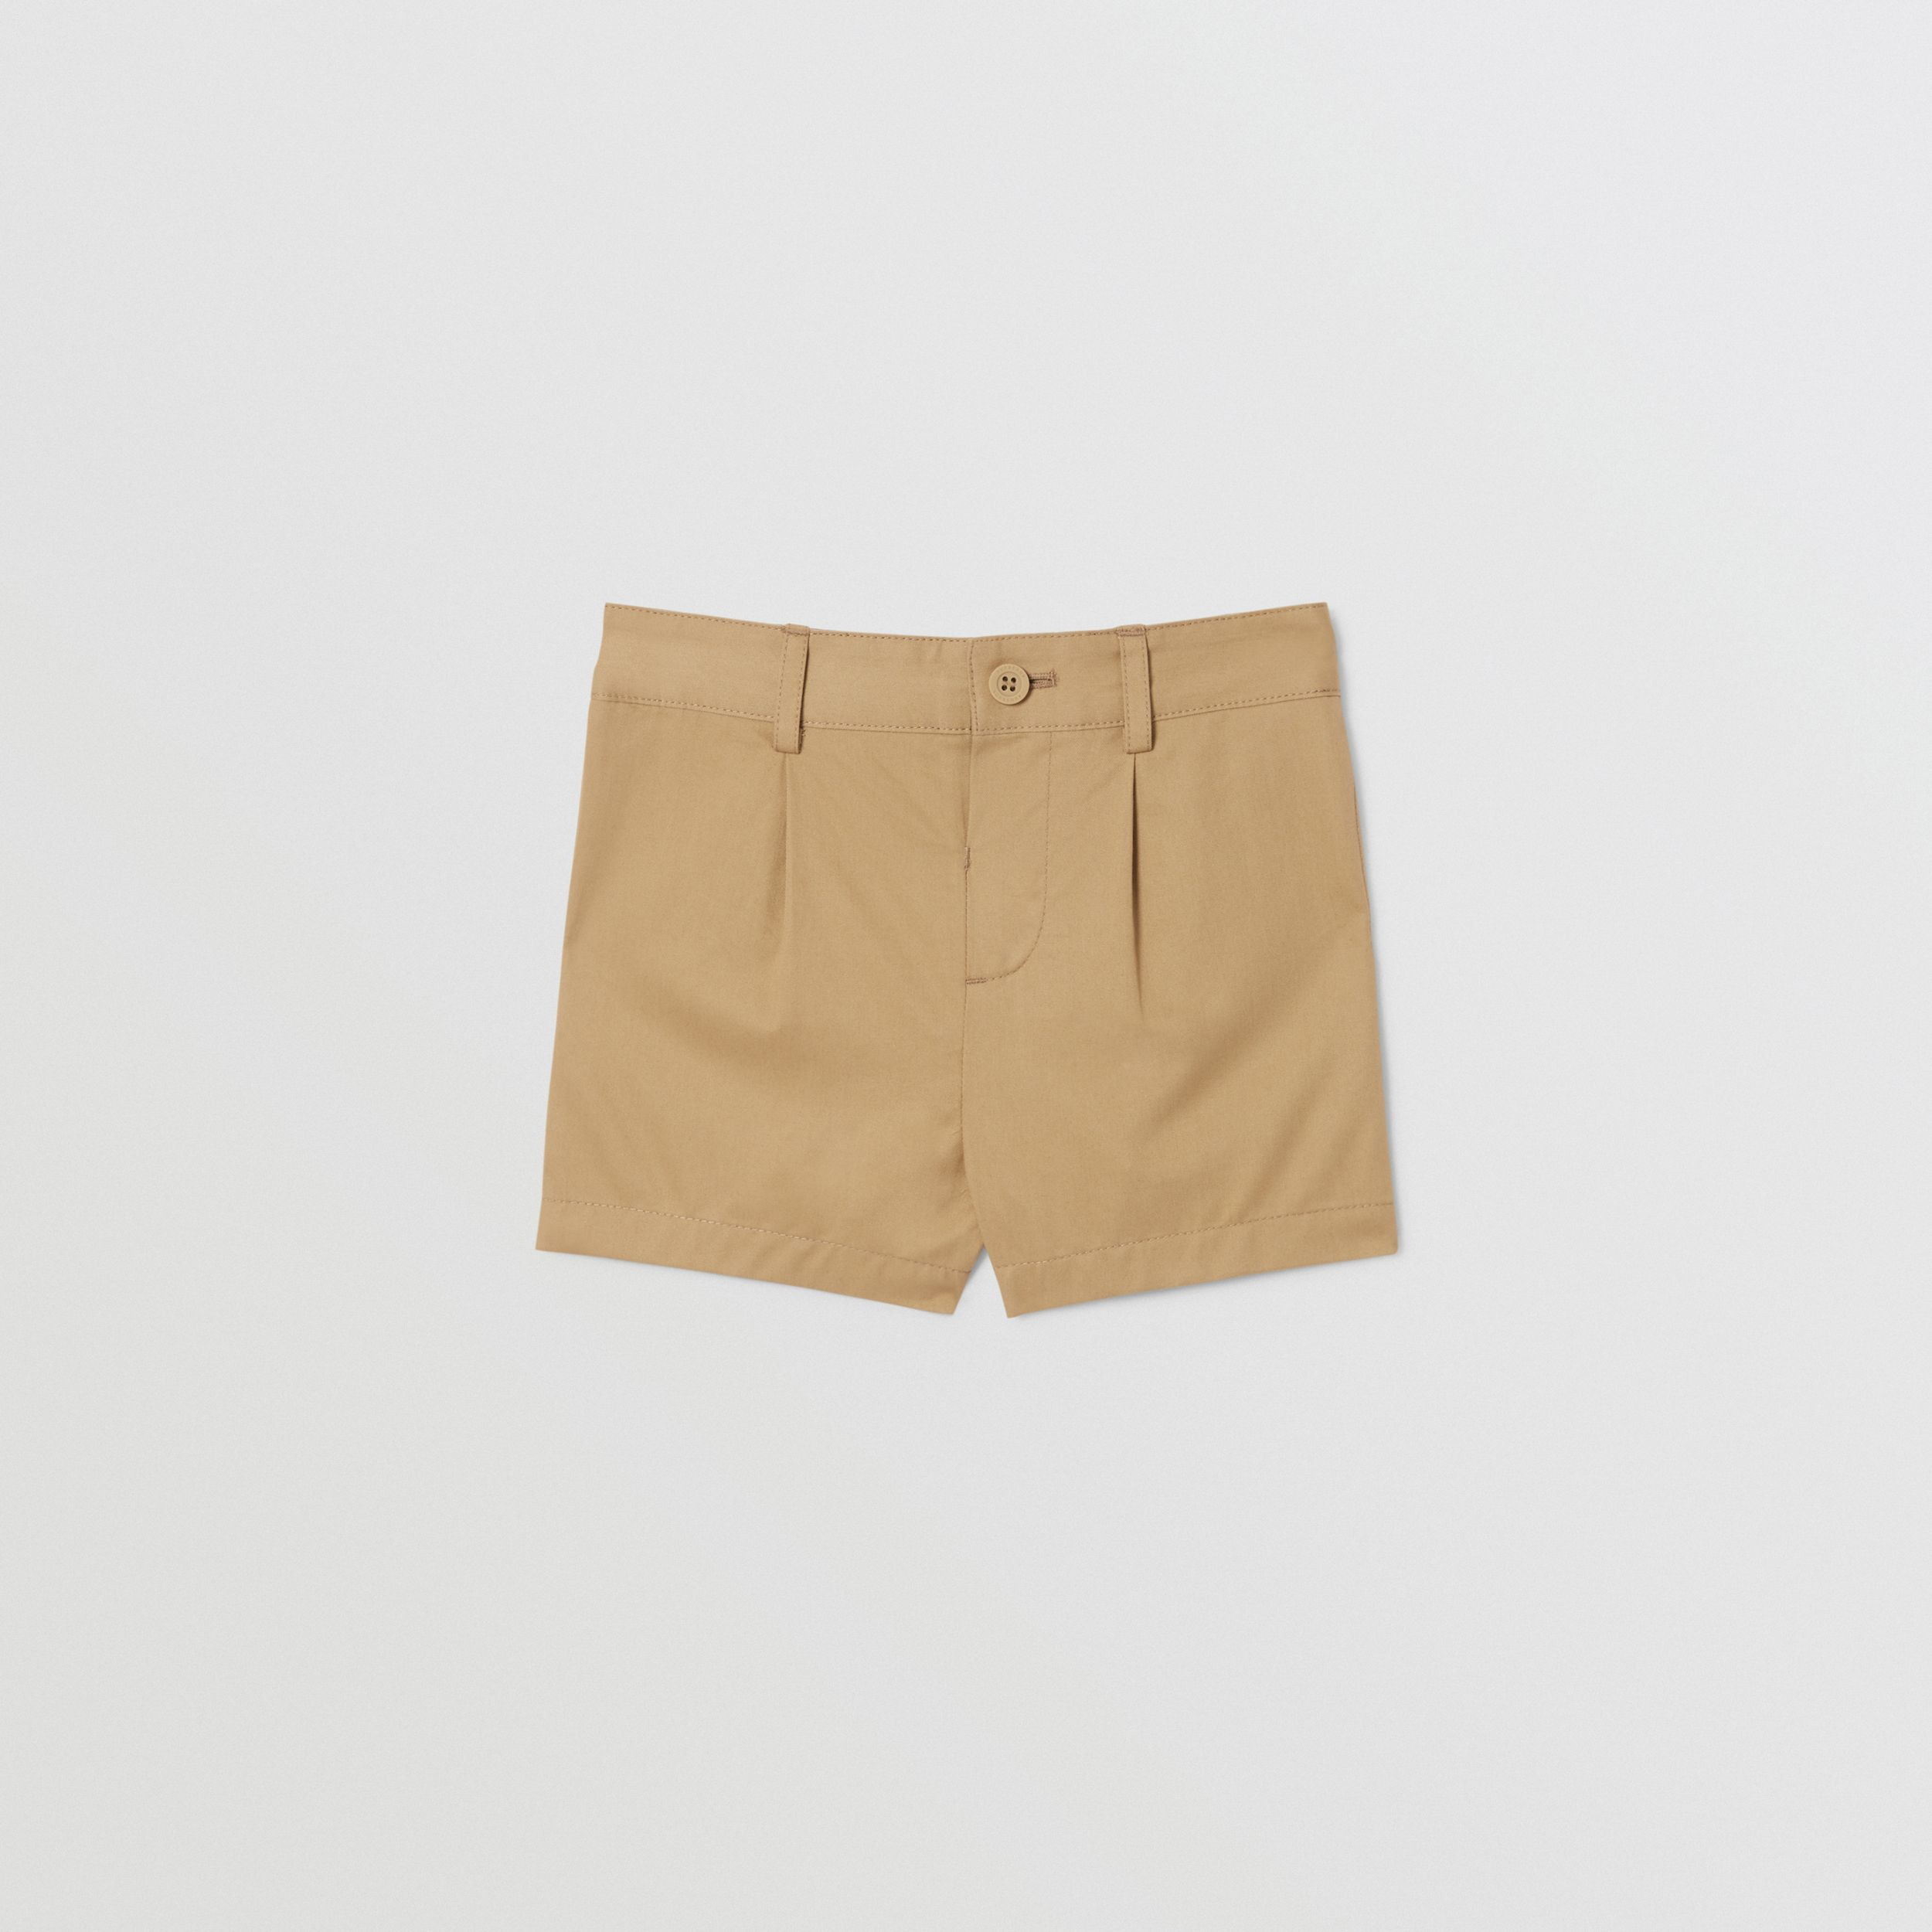 Logo Appliqué Cotton Twill Tailored Shorts in Archive Beige - Children | Burberry - 1